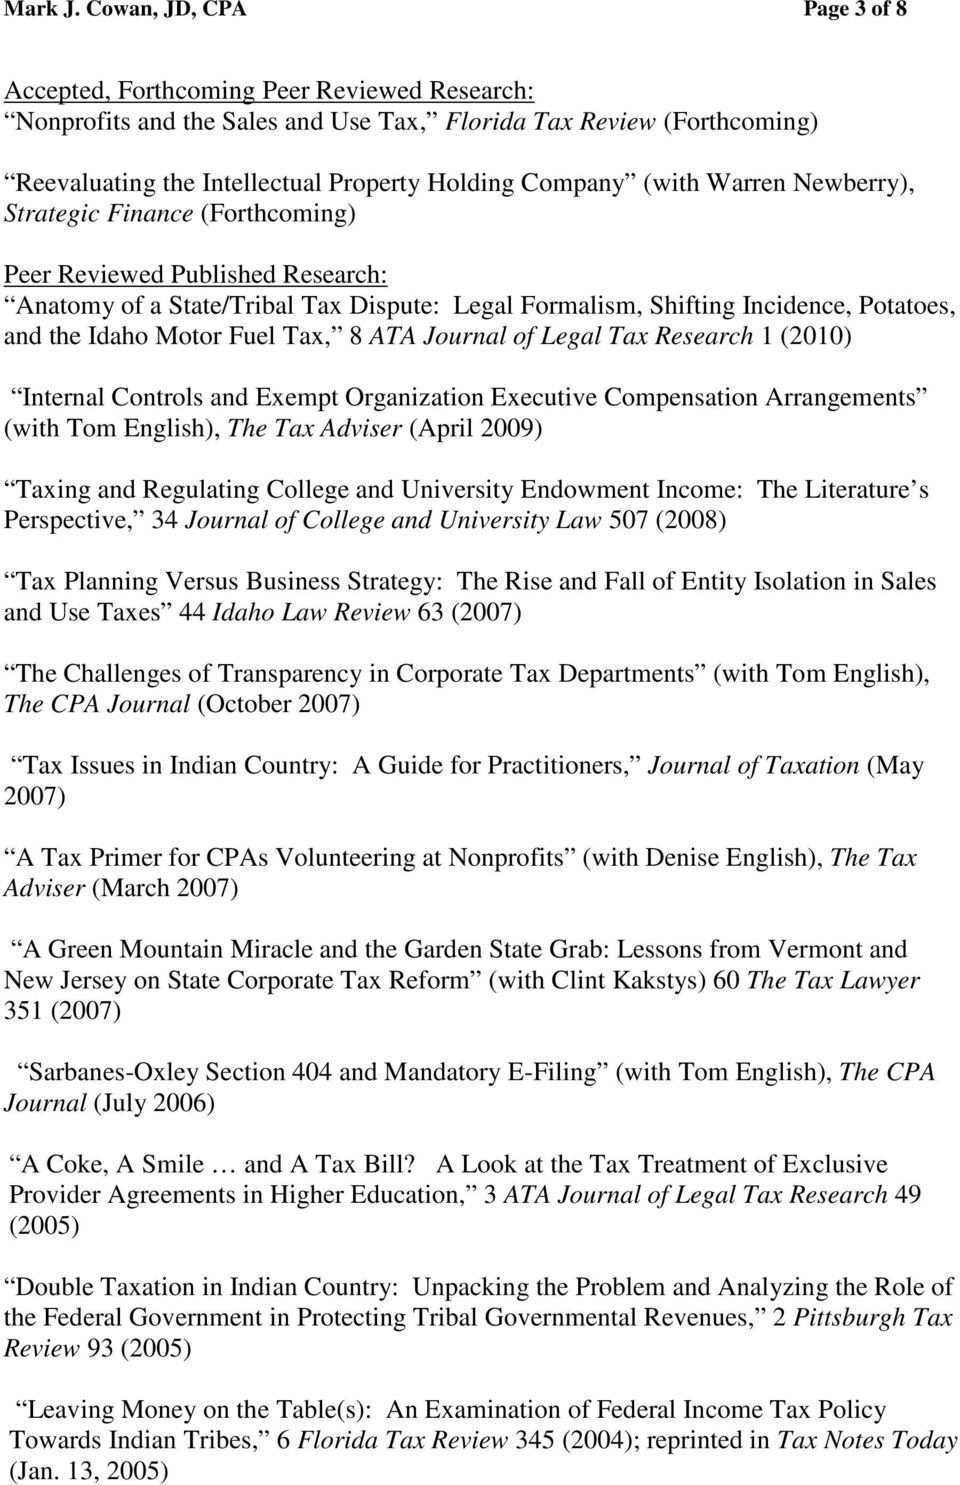 (with Warren Newberry), Strategic Finance (Forthcoming) Peer Reviewed Published Research: Anatomy of a State/Tribal Tax Dispute: Legal Formalism, Shifting Incidence, Potatoes, and the Idaho Motor